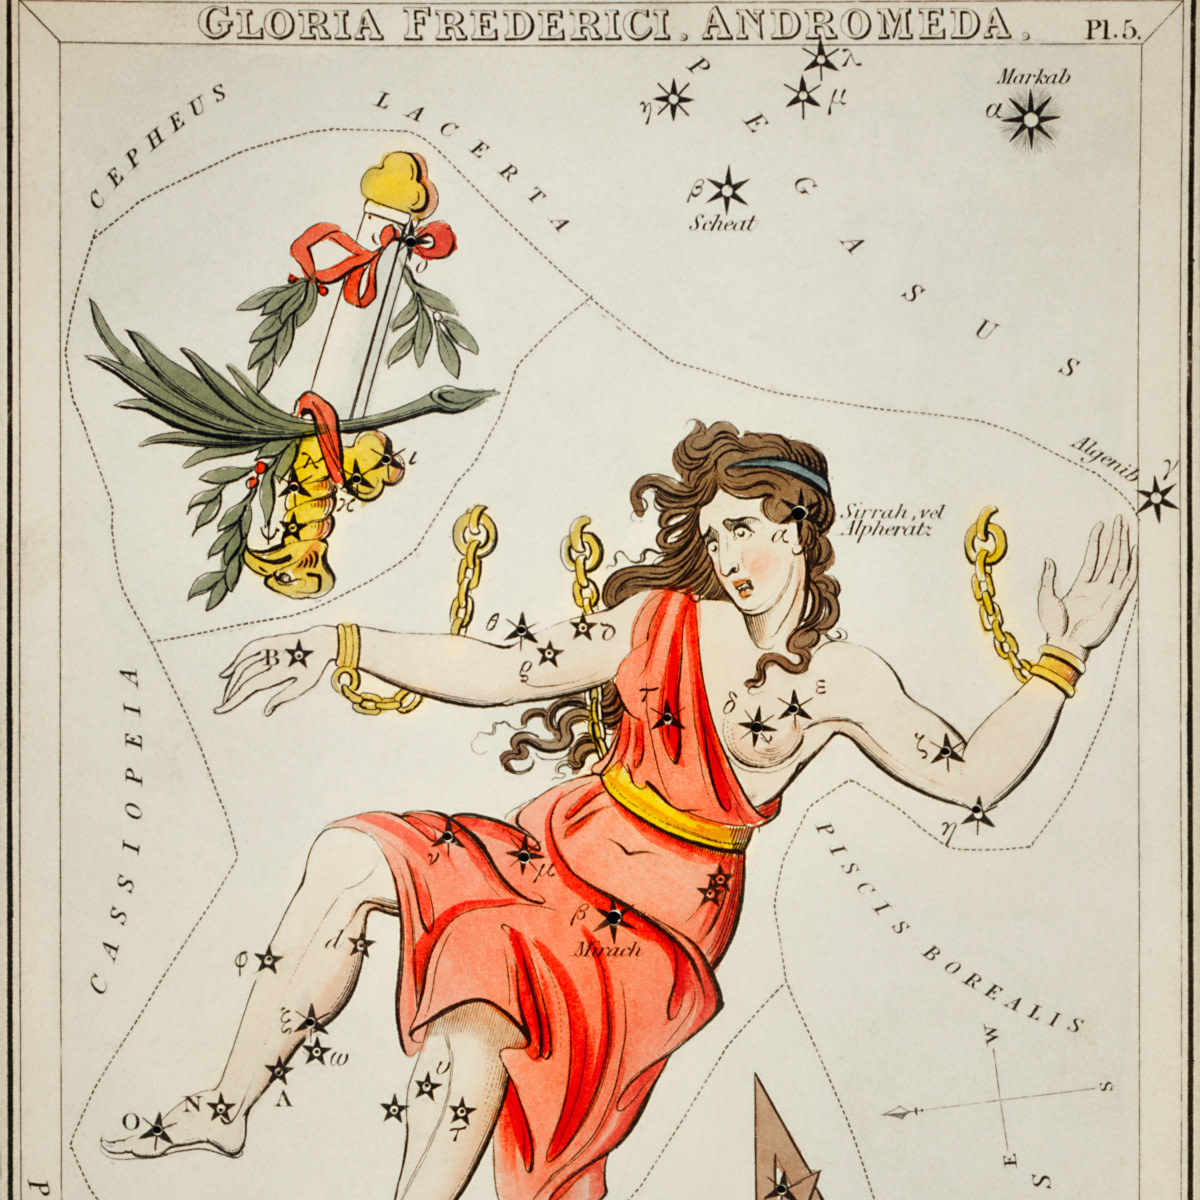 Astronomical chart illustration of Gloria Frederici, Andromed by Sidney Hall.